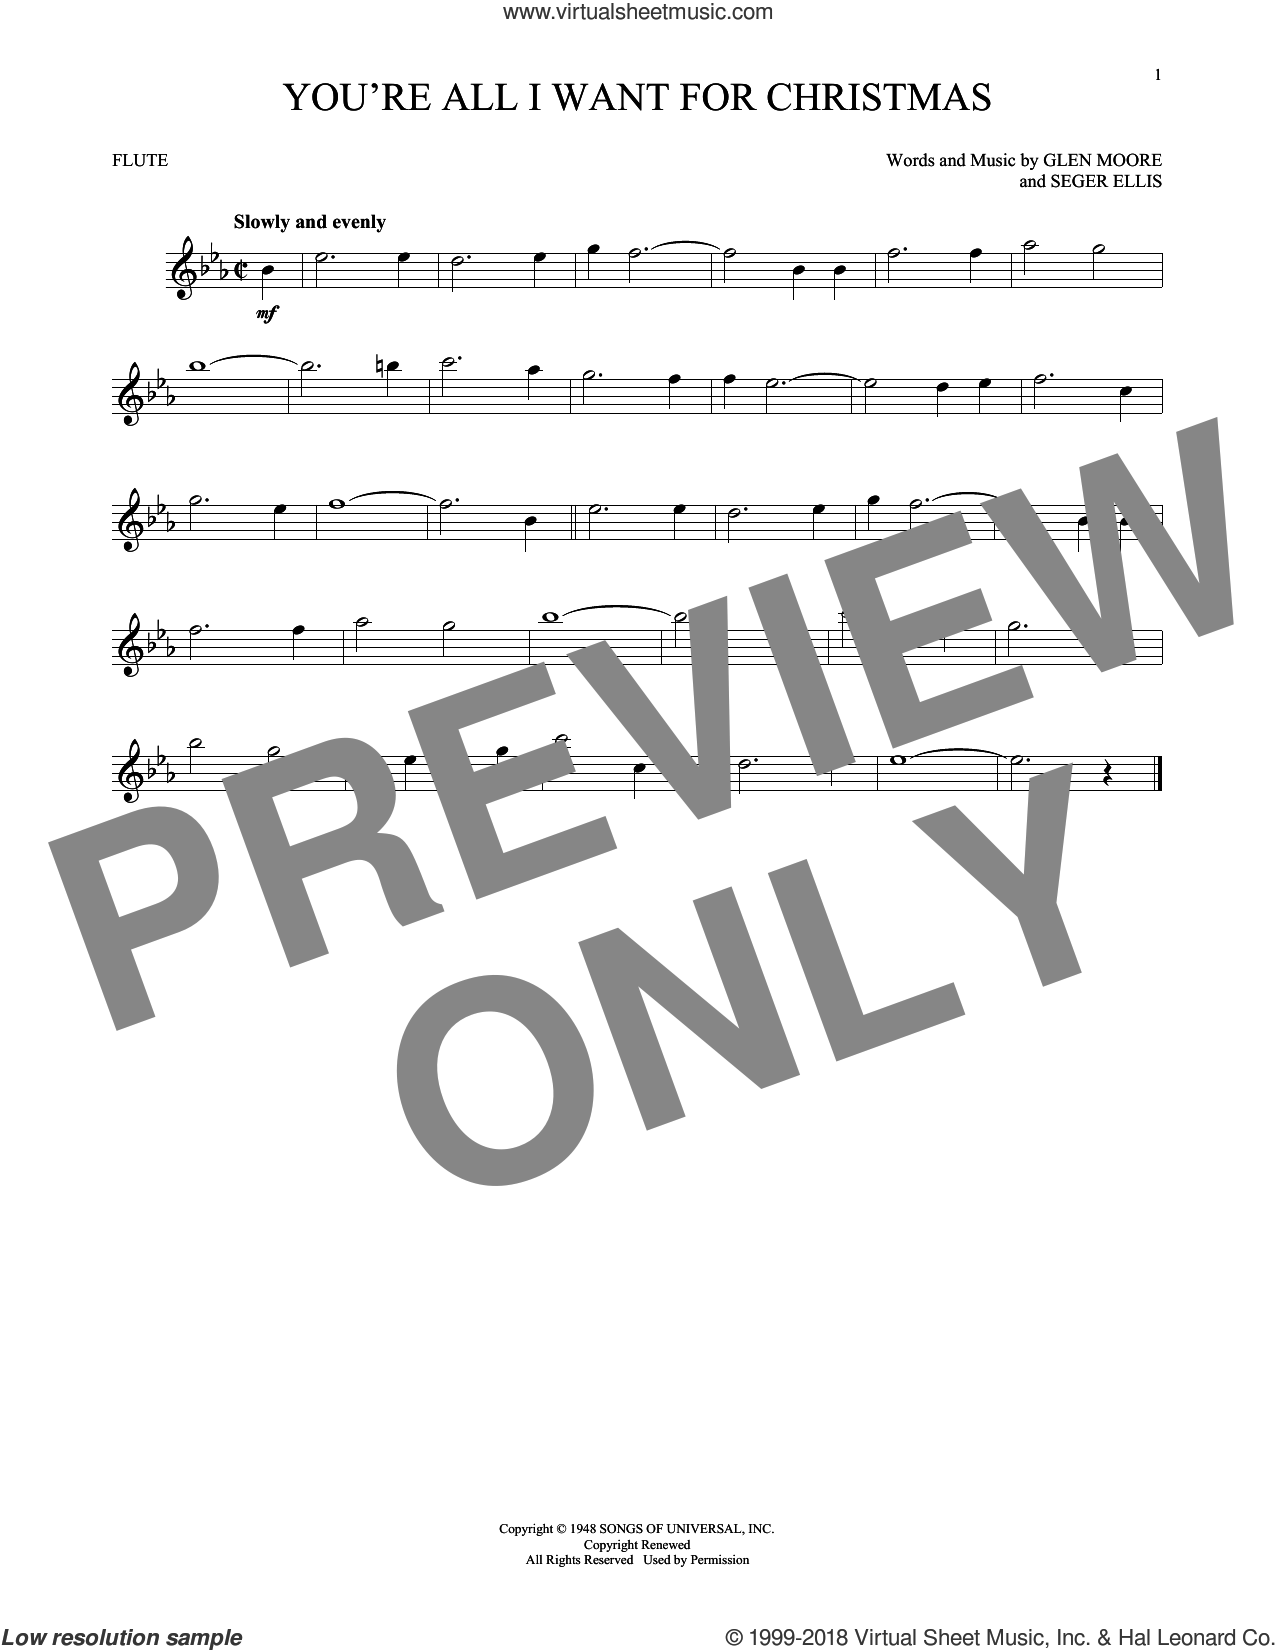 You're All I Want For Christmas sheet music for flute solo by Glen Moore, Frank Gallagher, Glen Moore & Seger Ellis and Seger Ellis, intermediate skill level